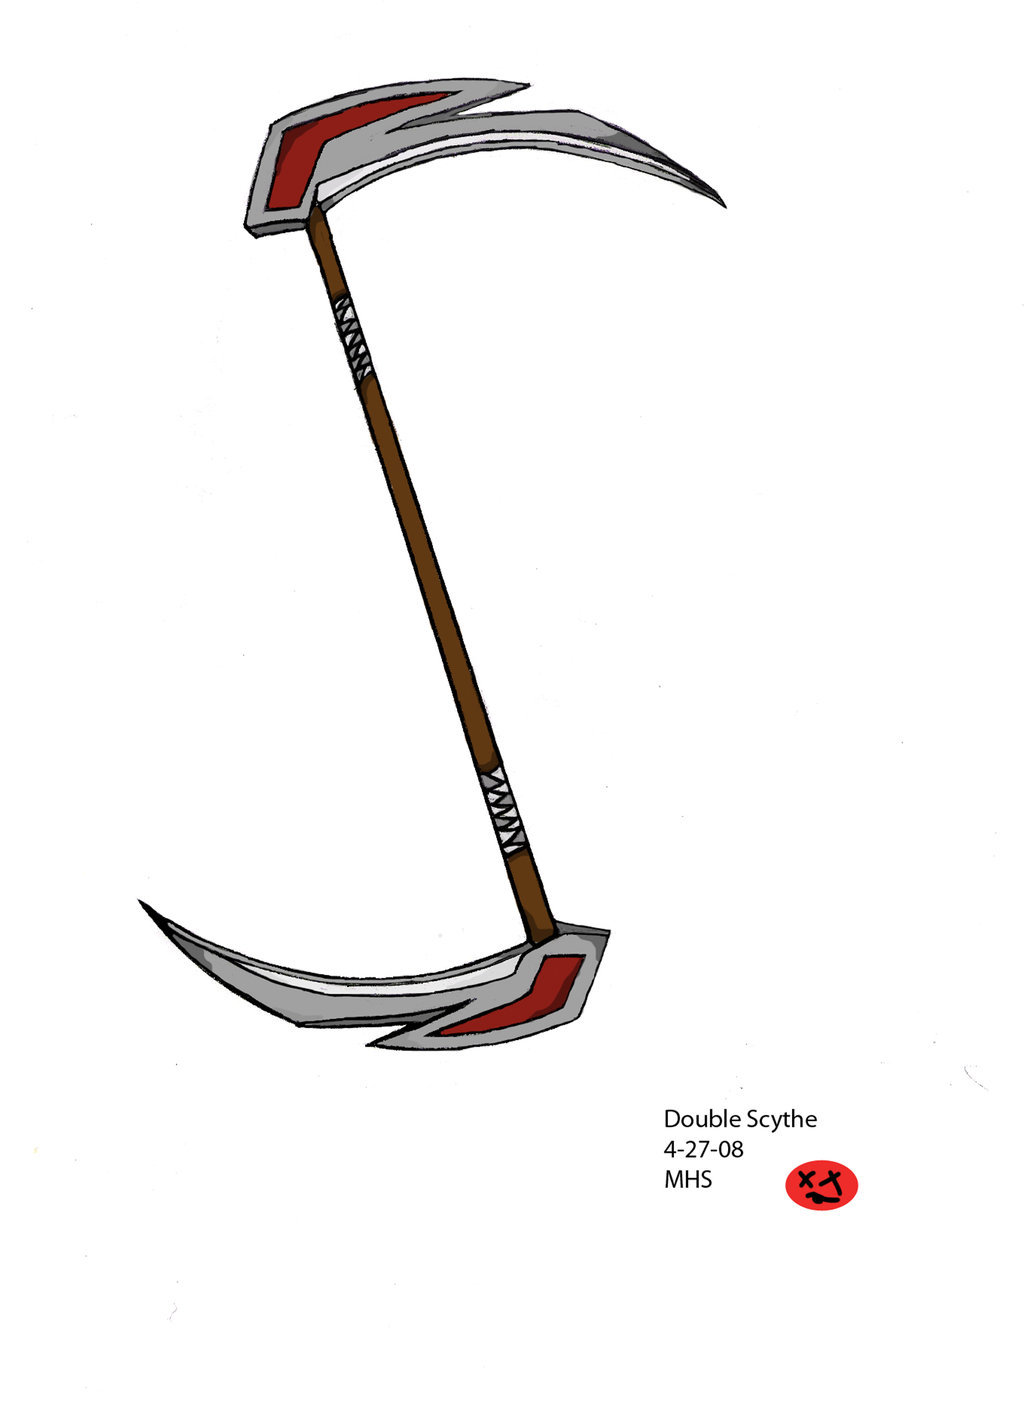 Drawn scythe double sided [Archive] 13 13 Stickpage KidDarkness's